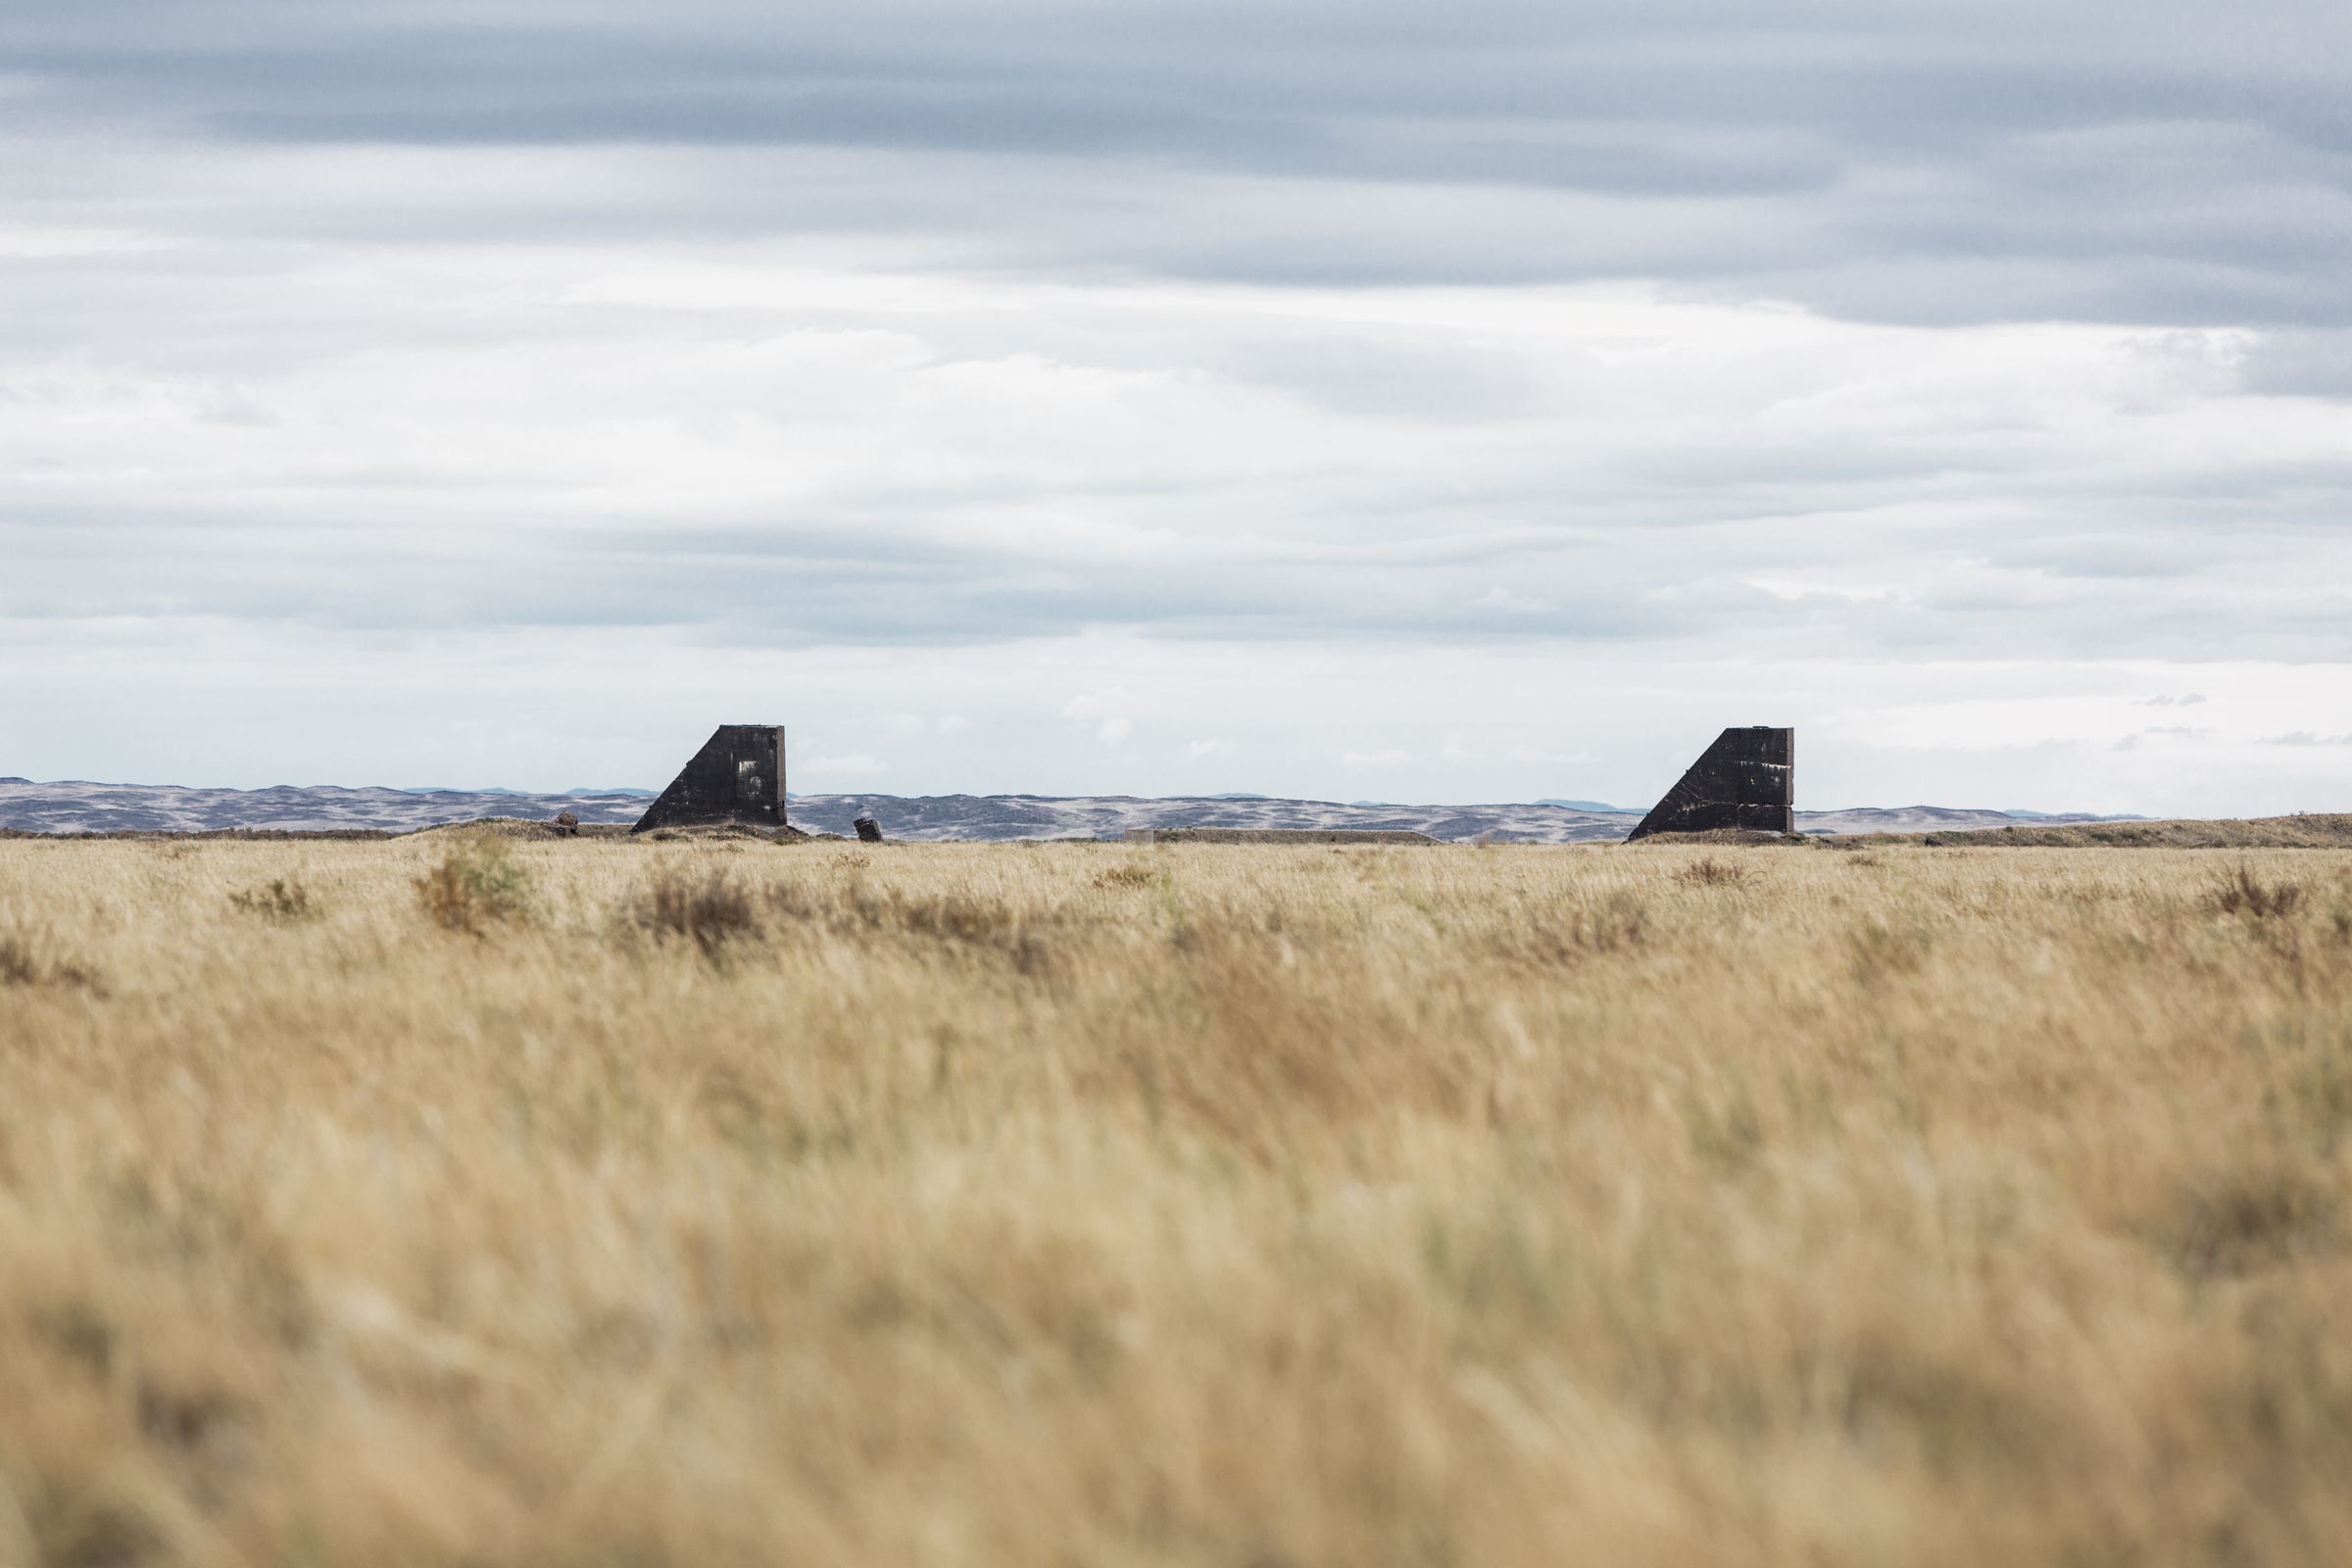 """The """"Polygon"""", the USSR's first nuclear bomb test site in Semipalatinsk, Kazakhstan."""